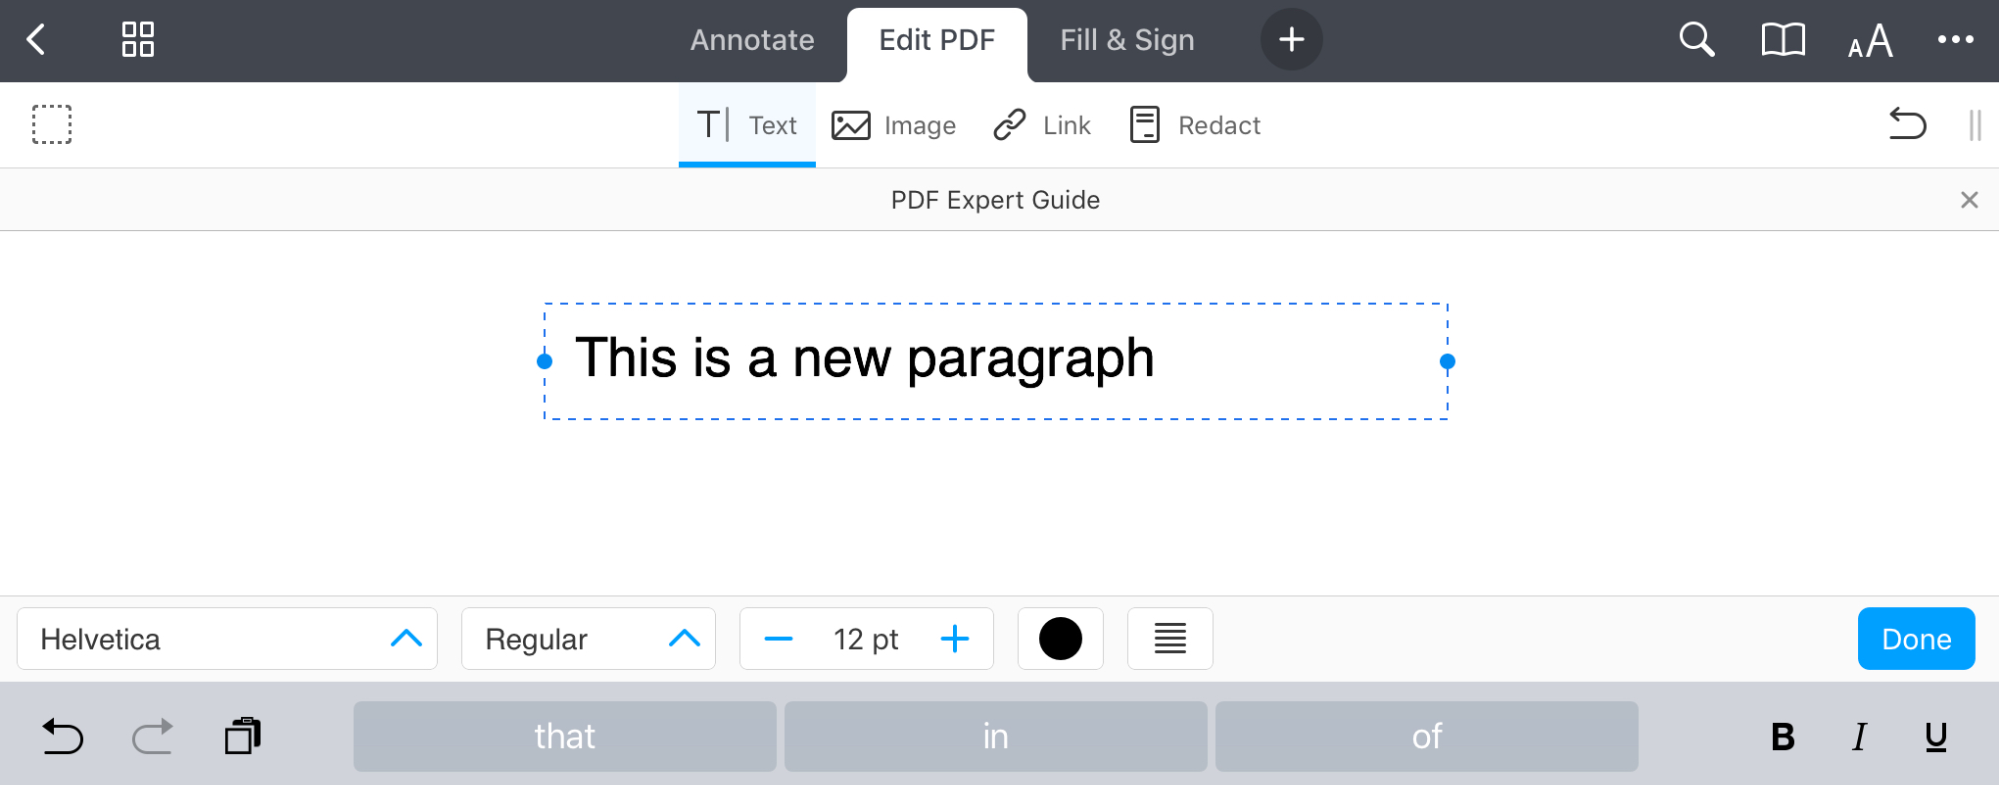 Can You Edit A Pdf >> Edit Pdf On Iphone How To Edit Pdf On Ipad And Iphone